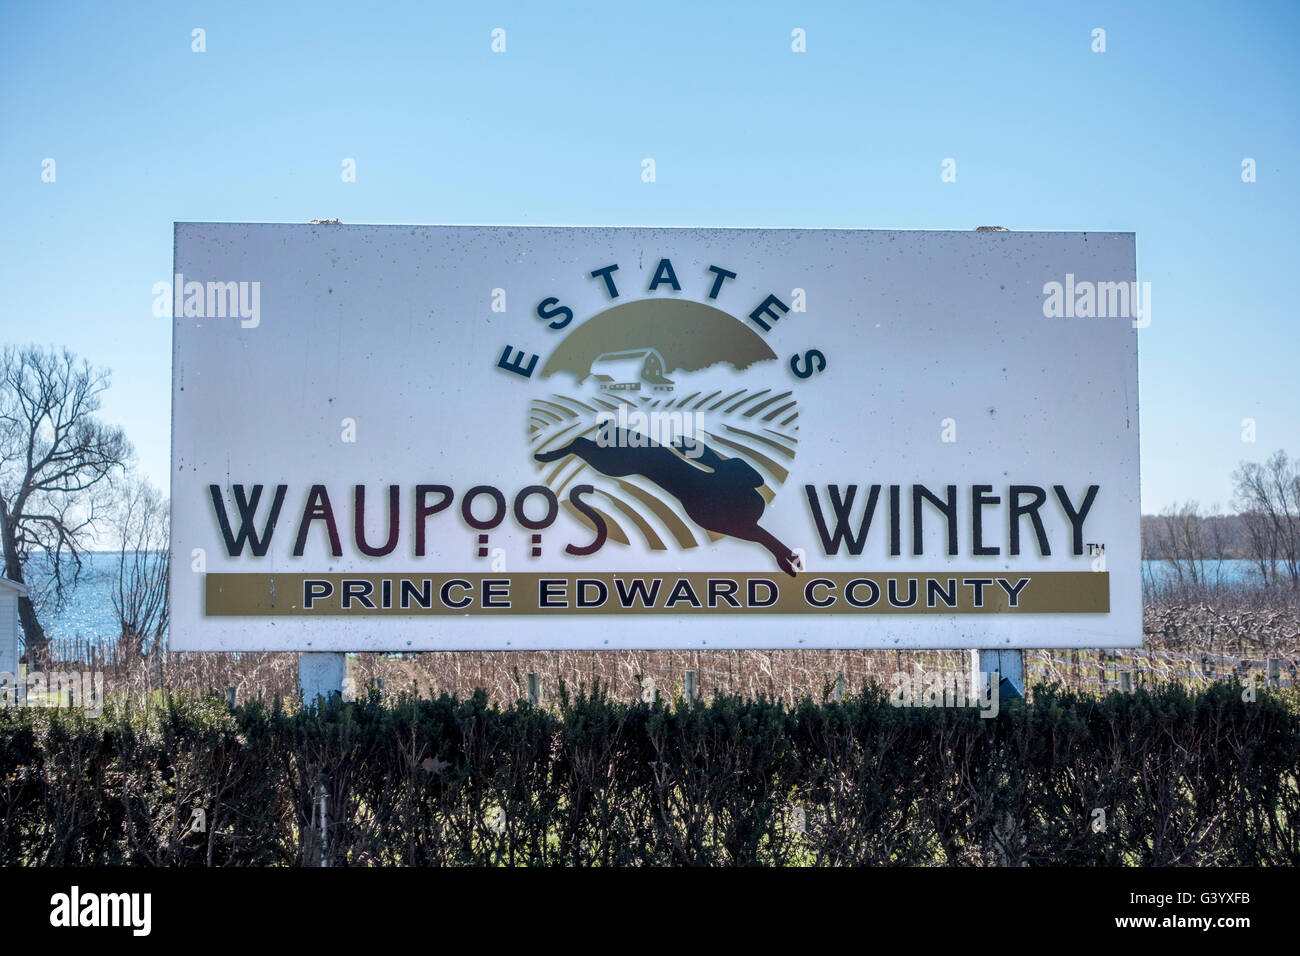 Waupoos Winery Sign A Vineyard In Prince Edward County Ontario A Popular Wine Making Area Of Ontario Canada - Stock Image